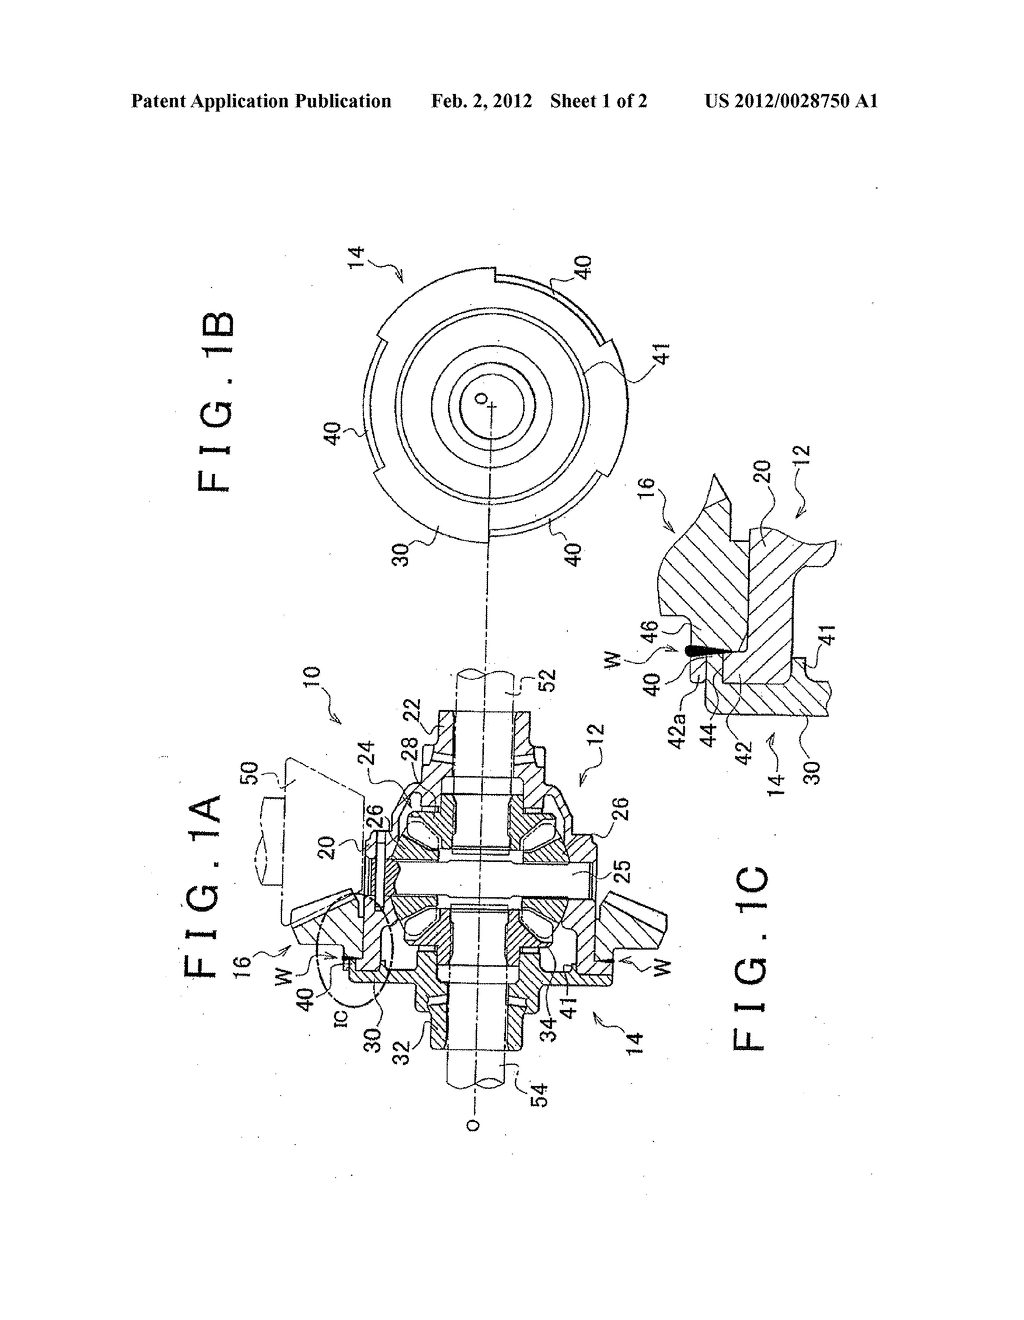 differential gear and vehicle provided with differential gear Ezgo Differential Schematic differential gear and vehicle provided with differential gear diagram, schematic, and image 02